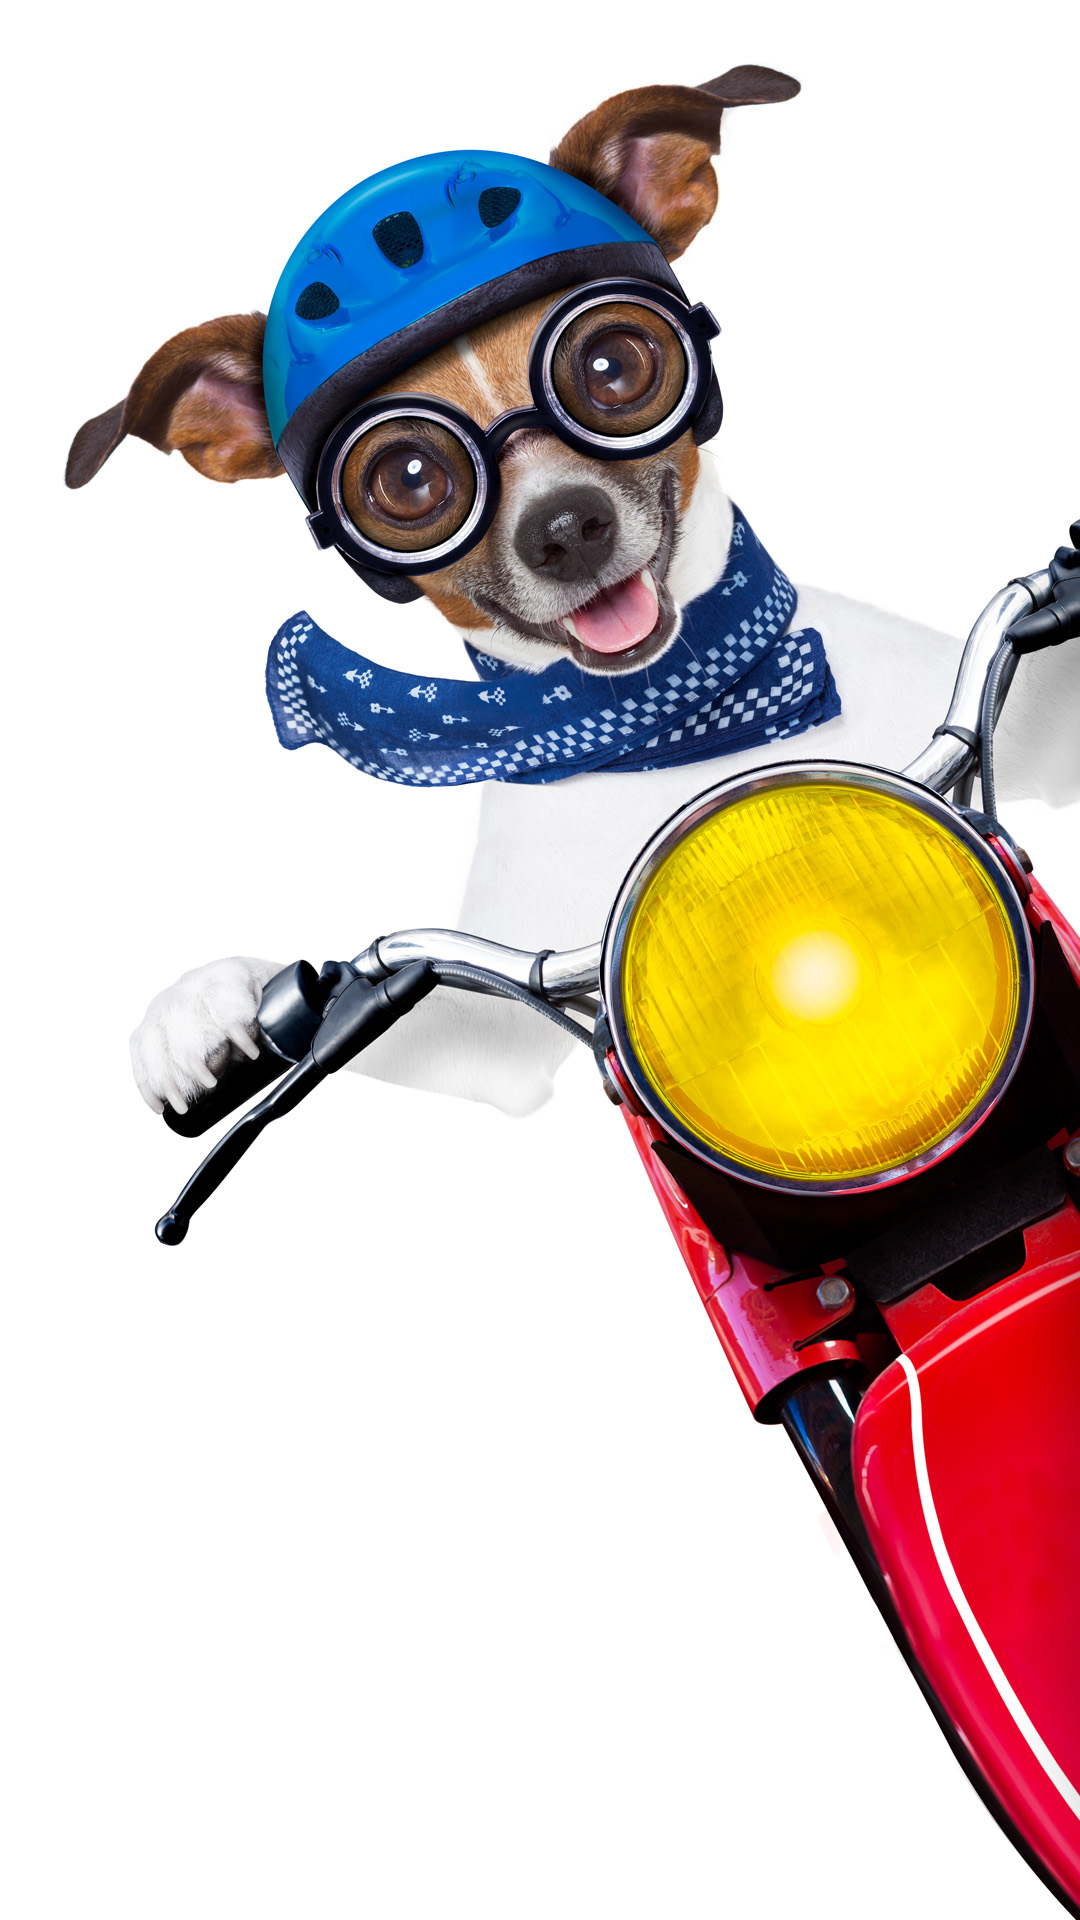 motorbike dog beside a blank white banner